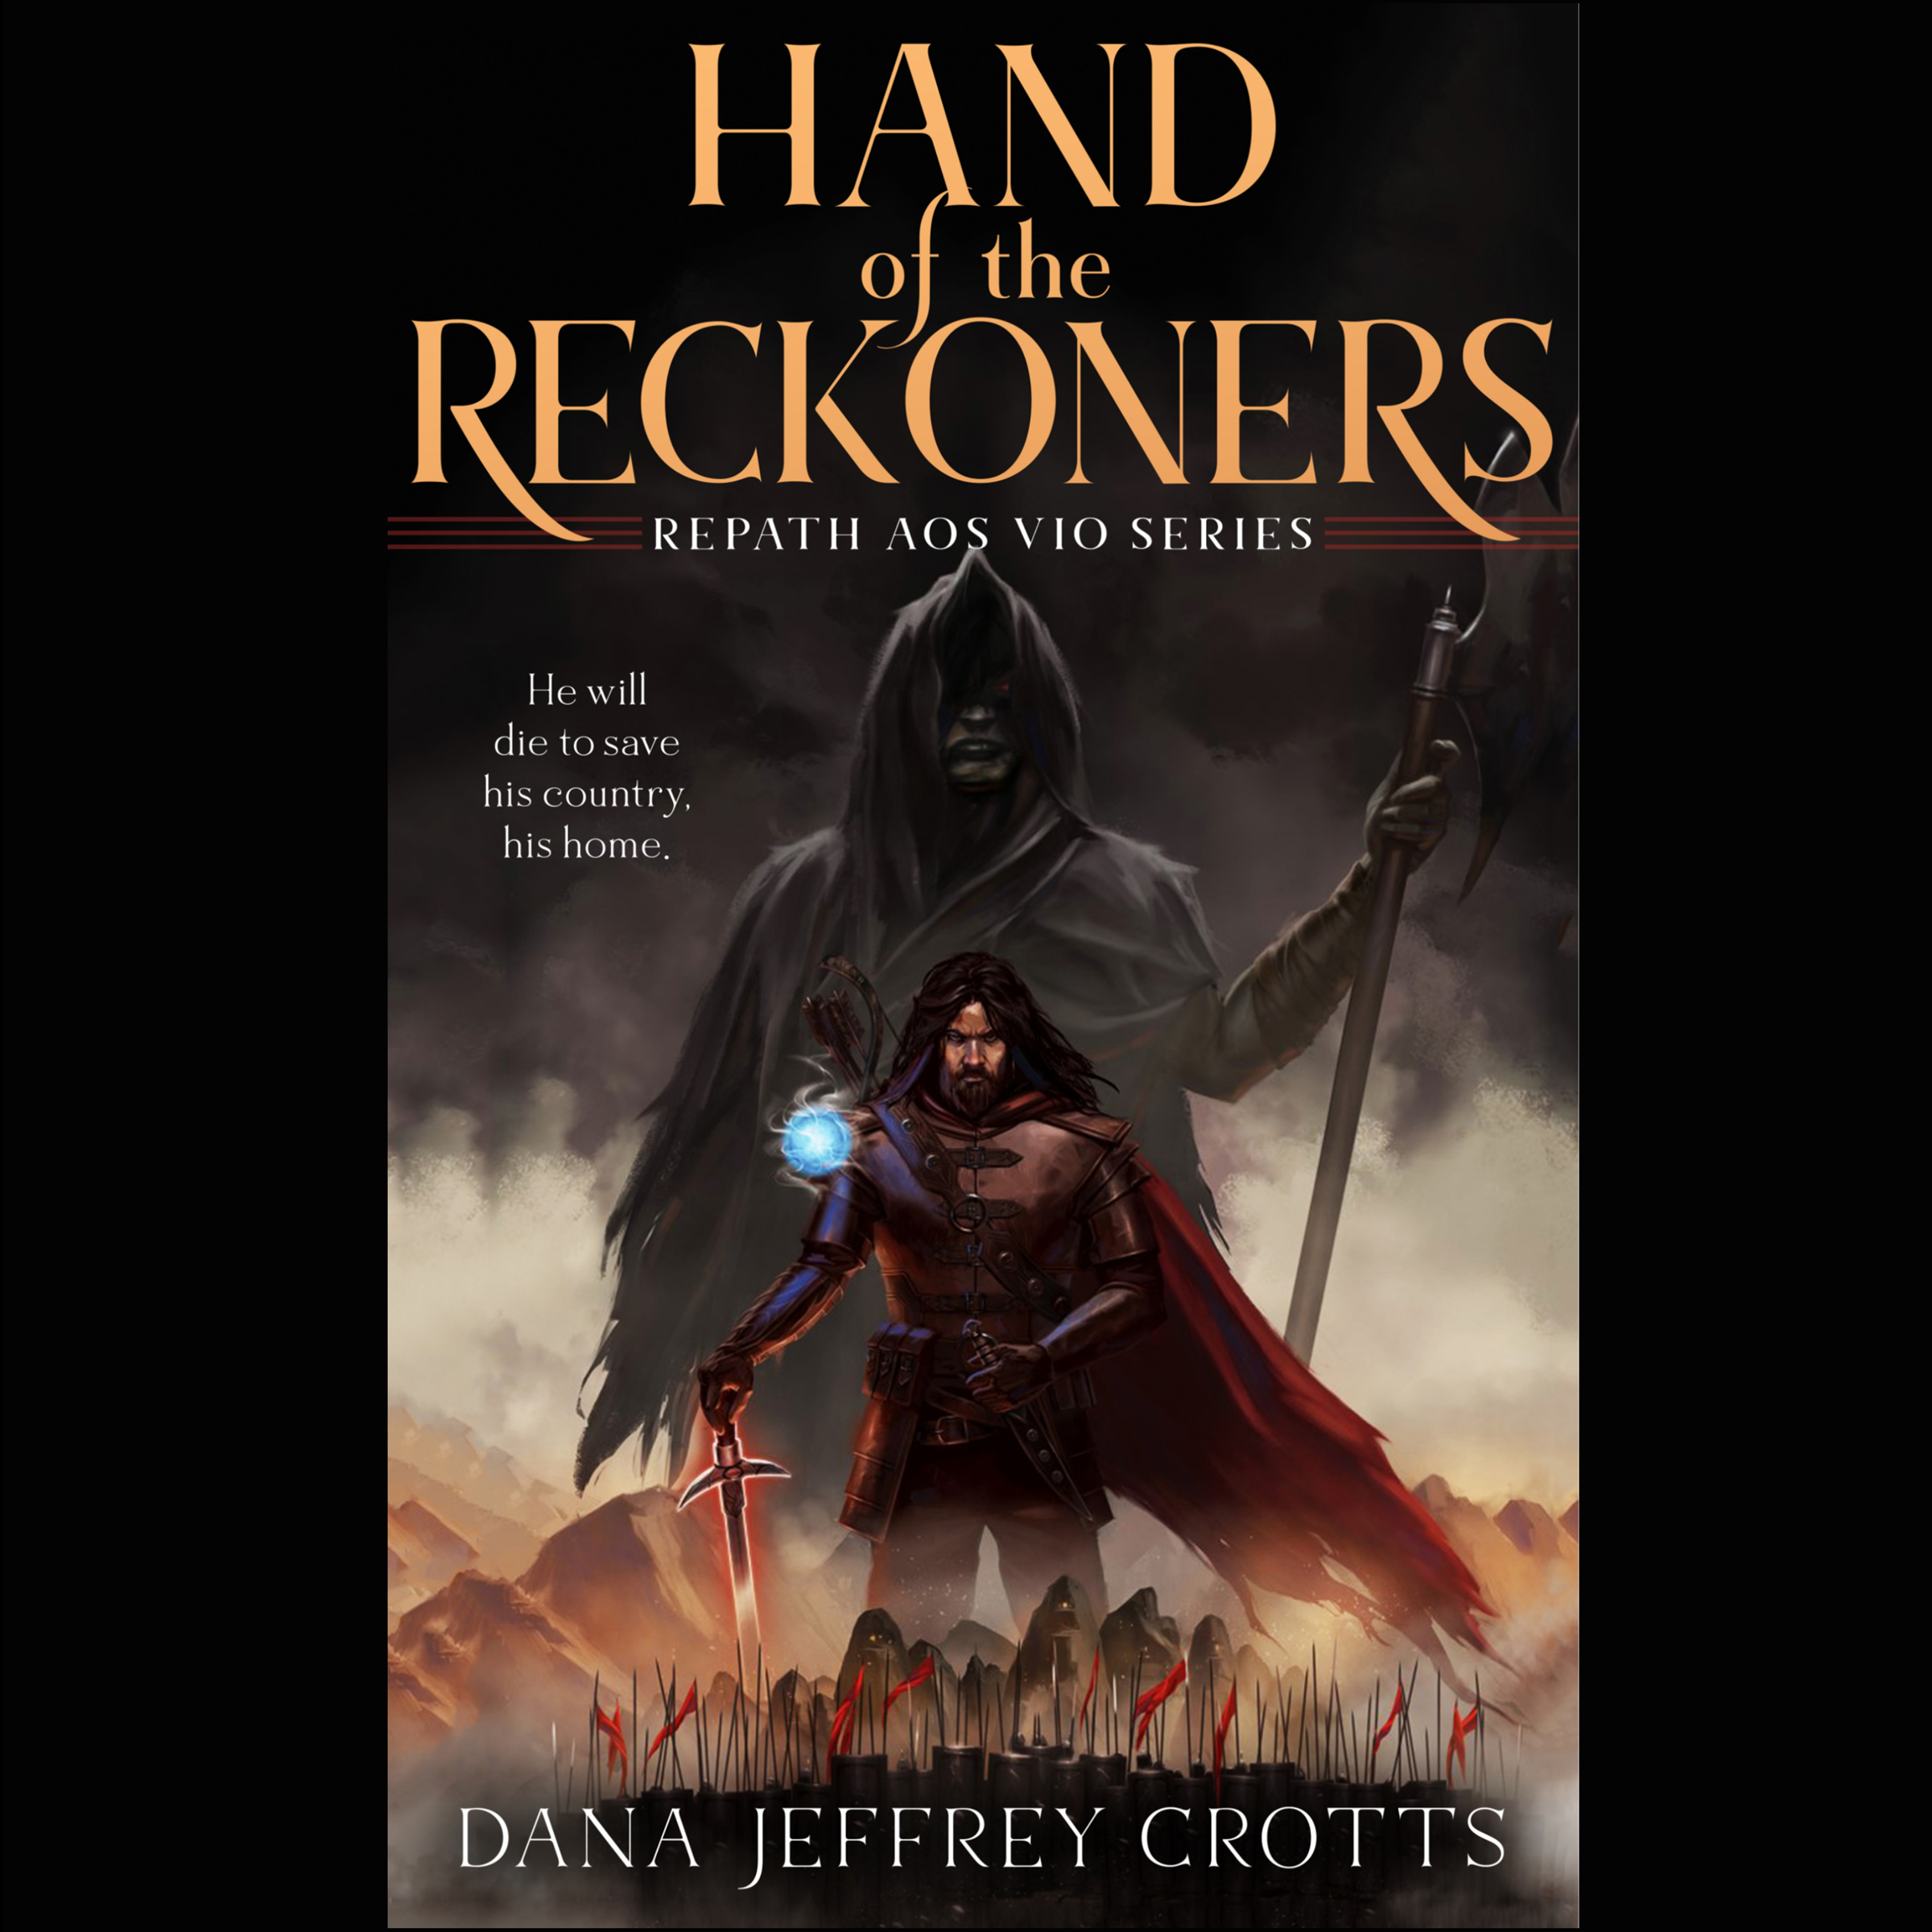 Hand of the Reckoners